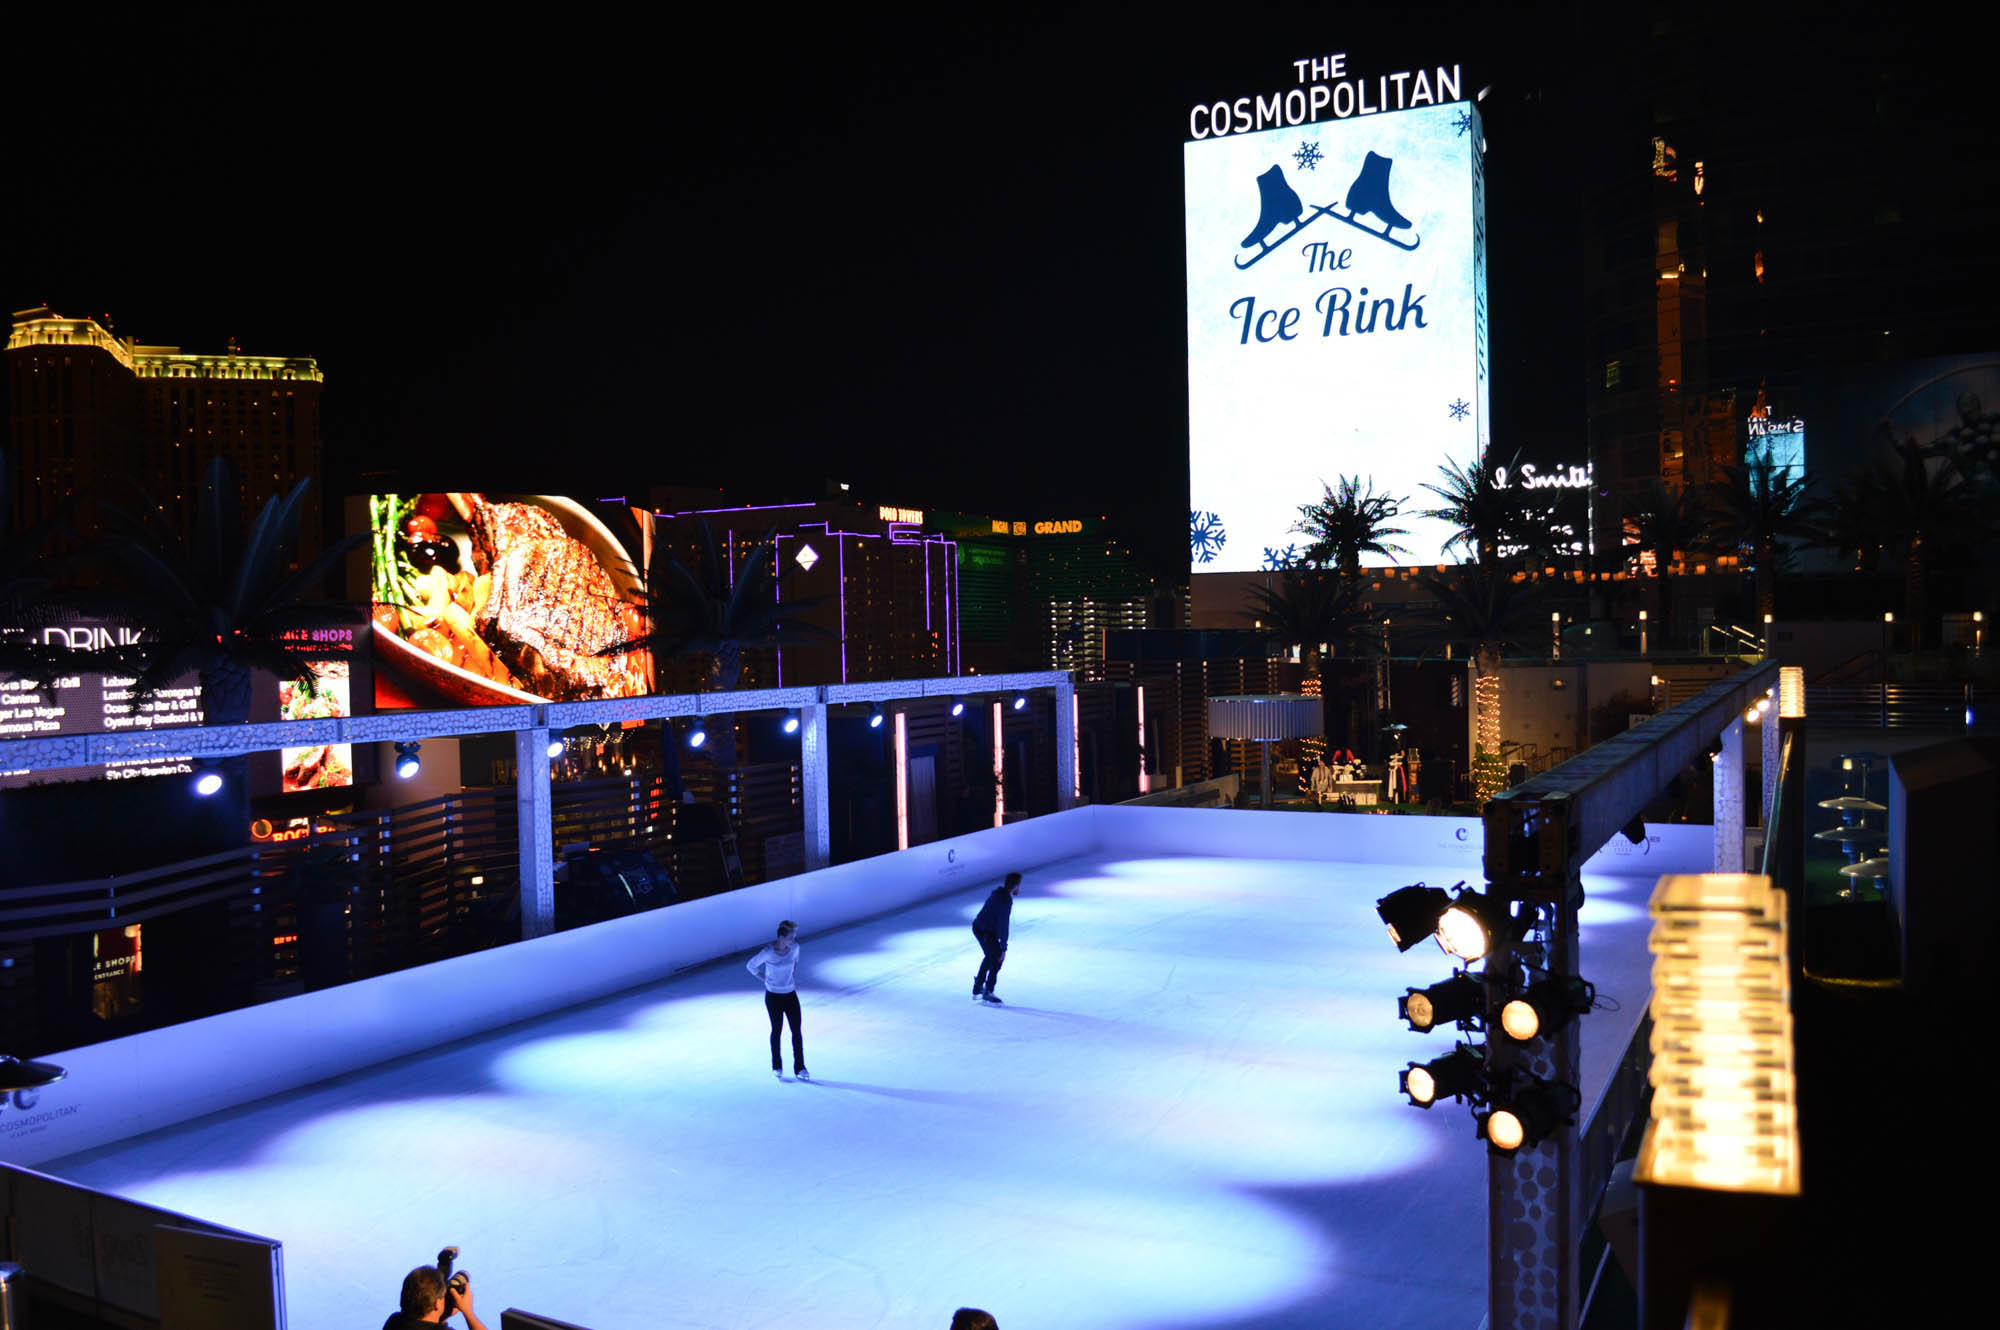 Skating Rink At The Cosmopolitan